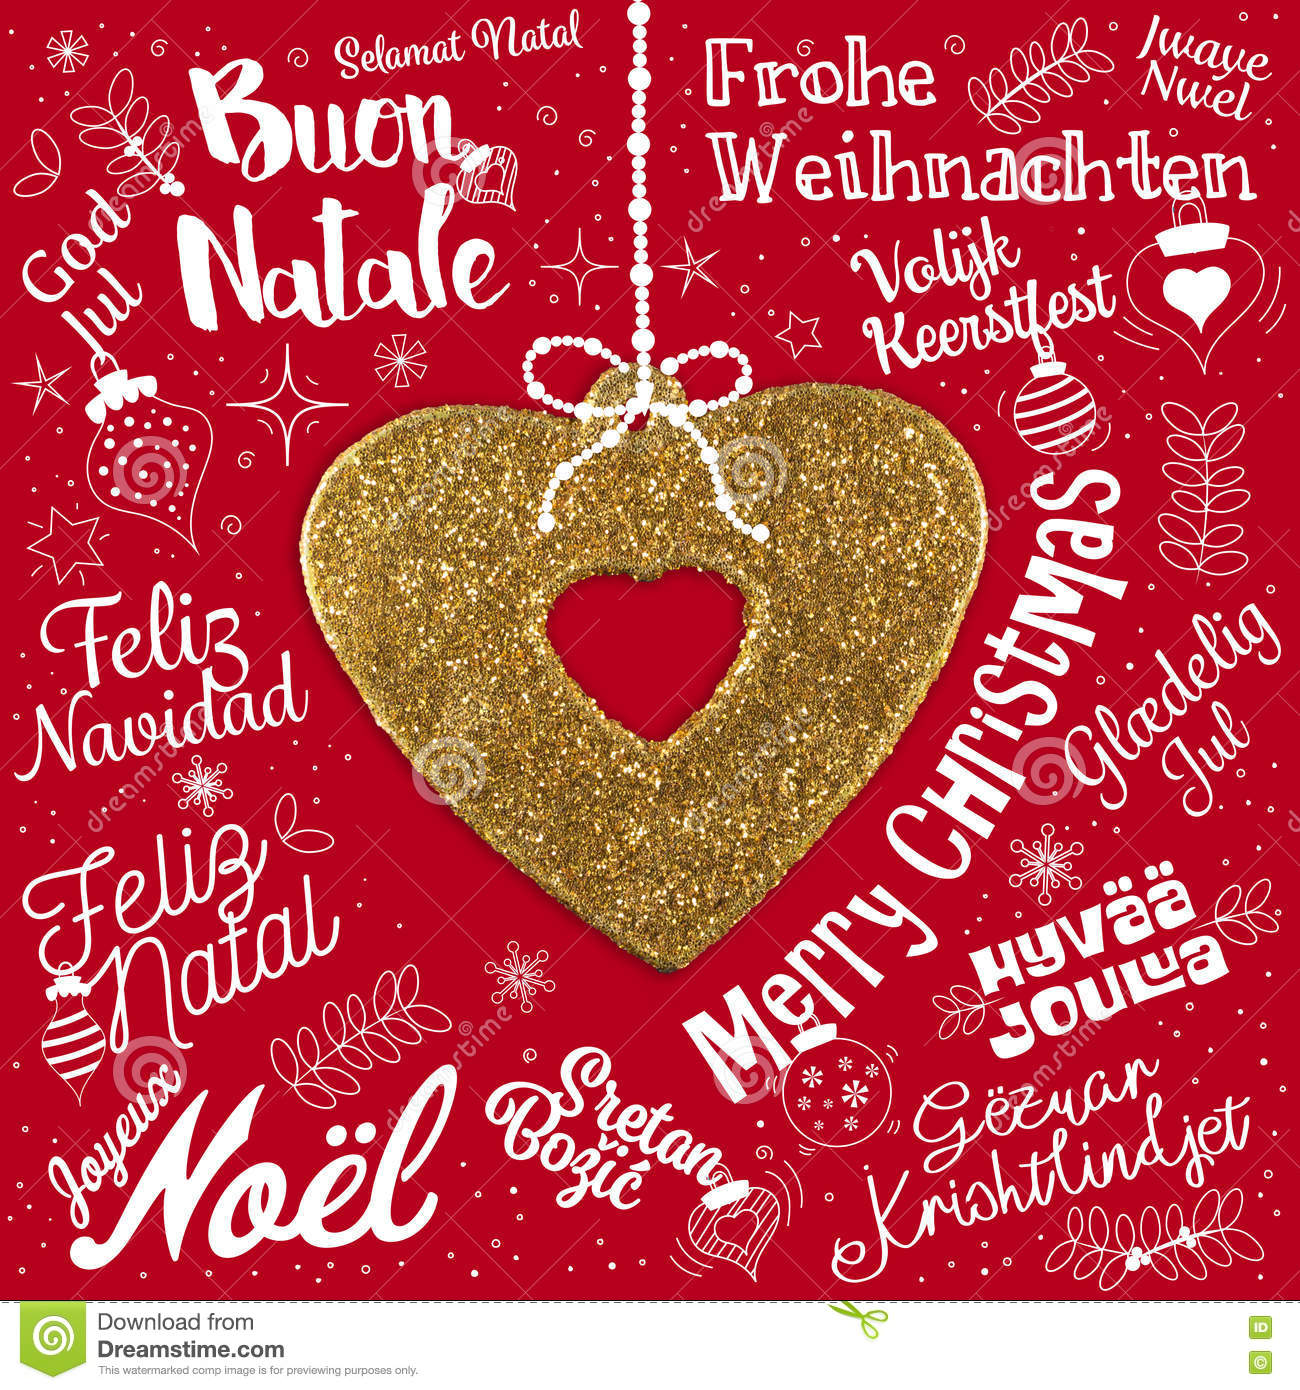 Merry christmas greetings card from world in different languages merry christmas greetings card from world in different languages italian bauble kristyandbryce Images